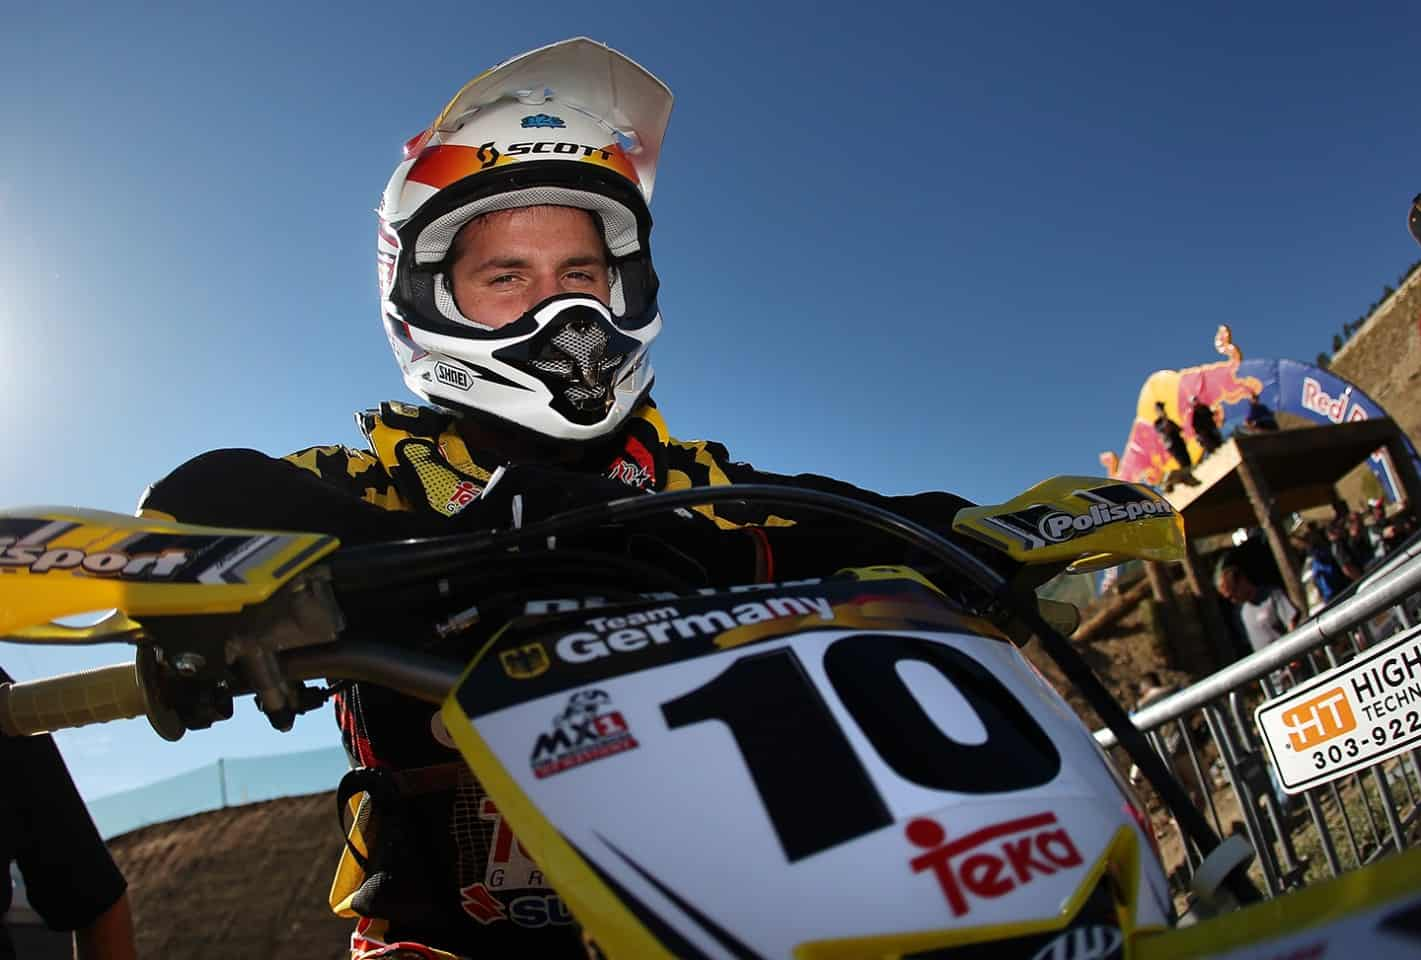 Motocoss of Nations 2010 in Lakewood, Colorado - Marcus Schiffer